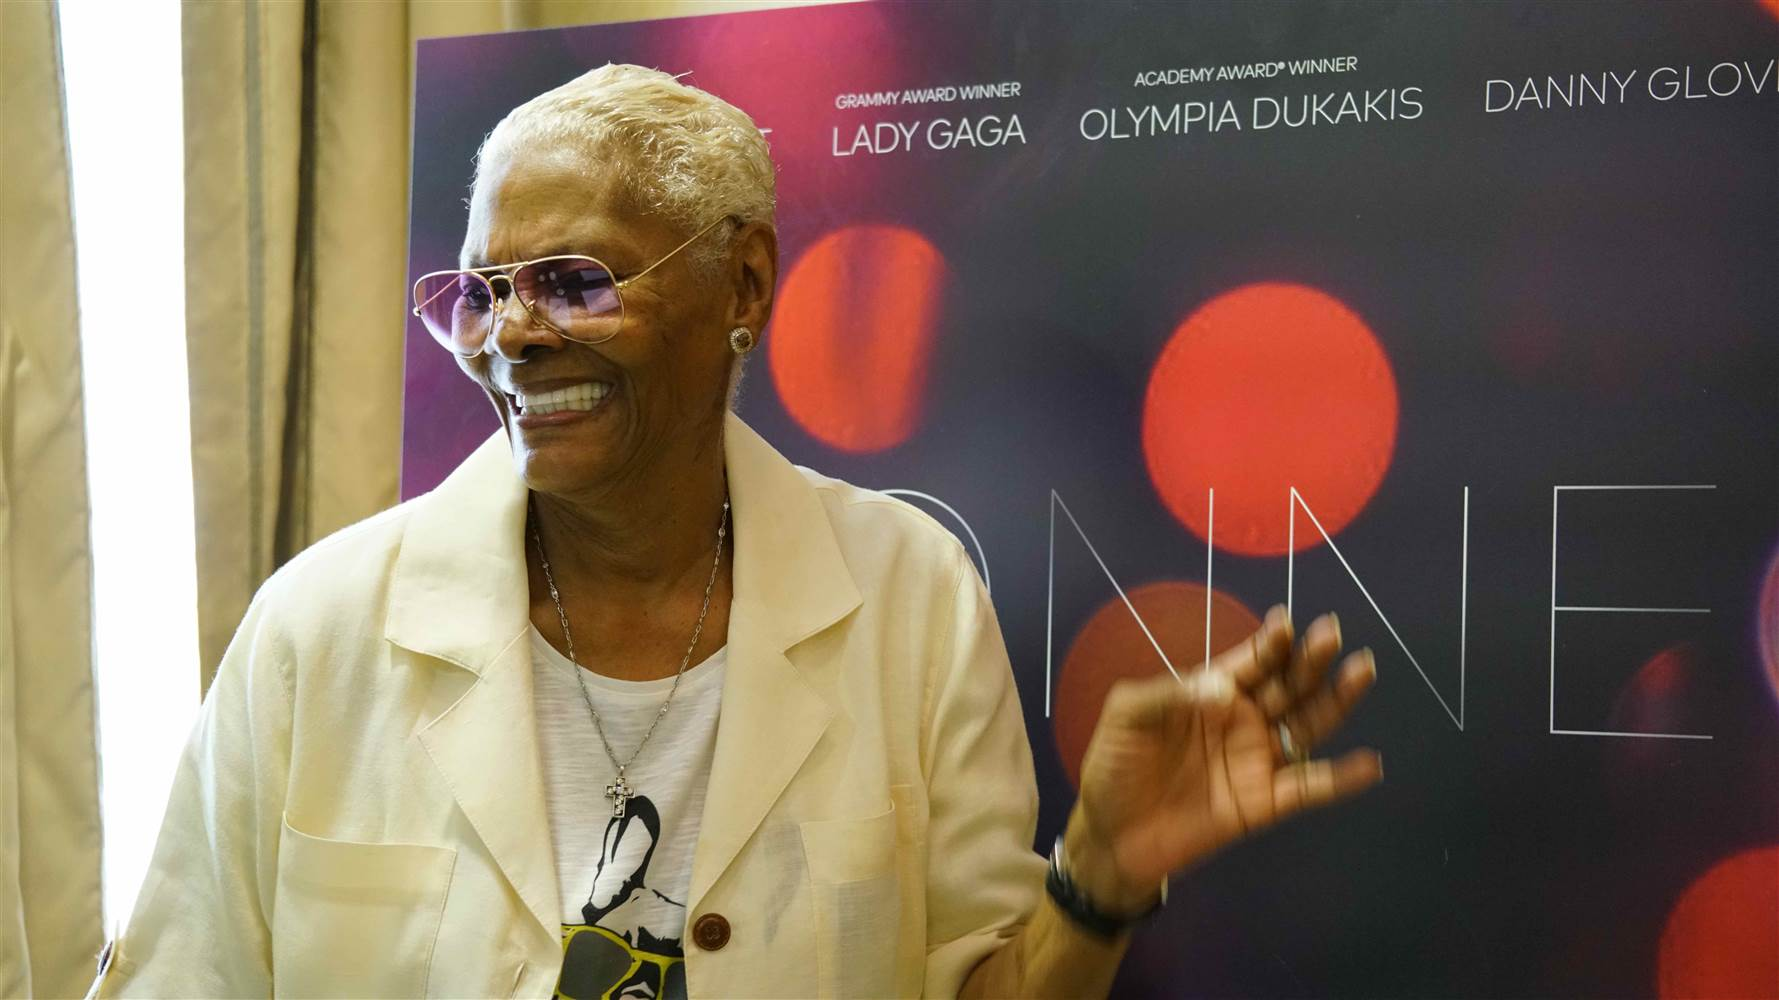 Dionne Warwick announced her upcoming biopic at the Cannes Film Festival on May 13, 2016. Although Lady Gaga's name appeared on a promotional poster, her publicists said she is not attached to the project.